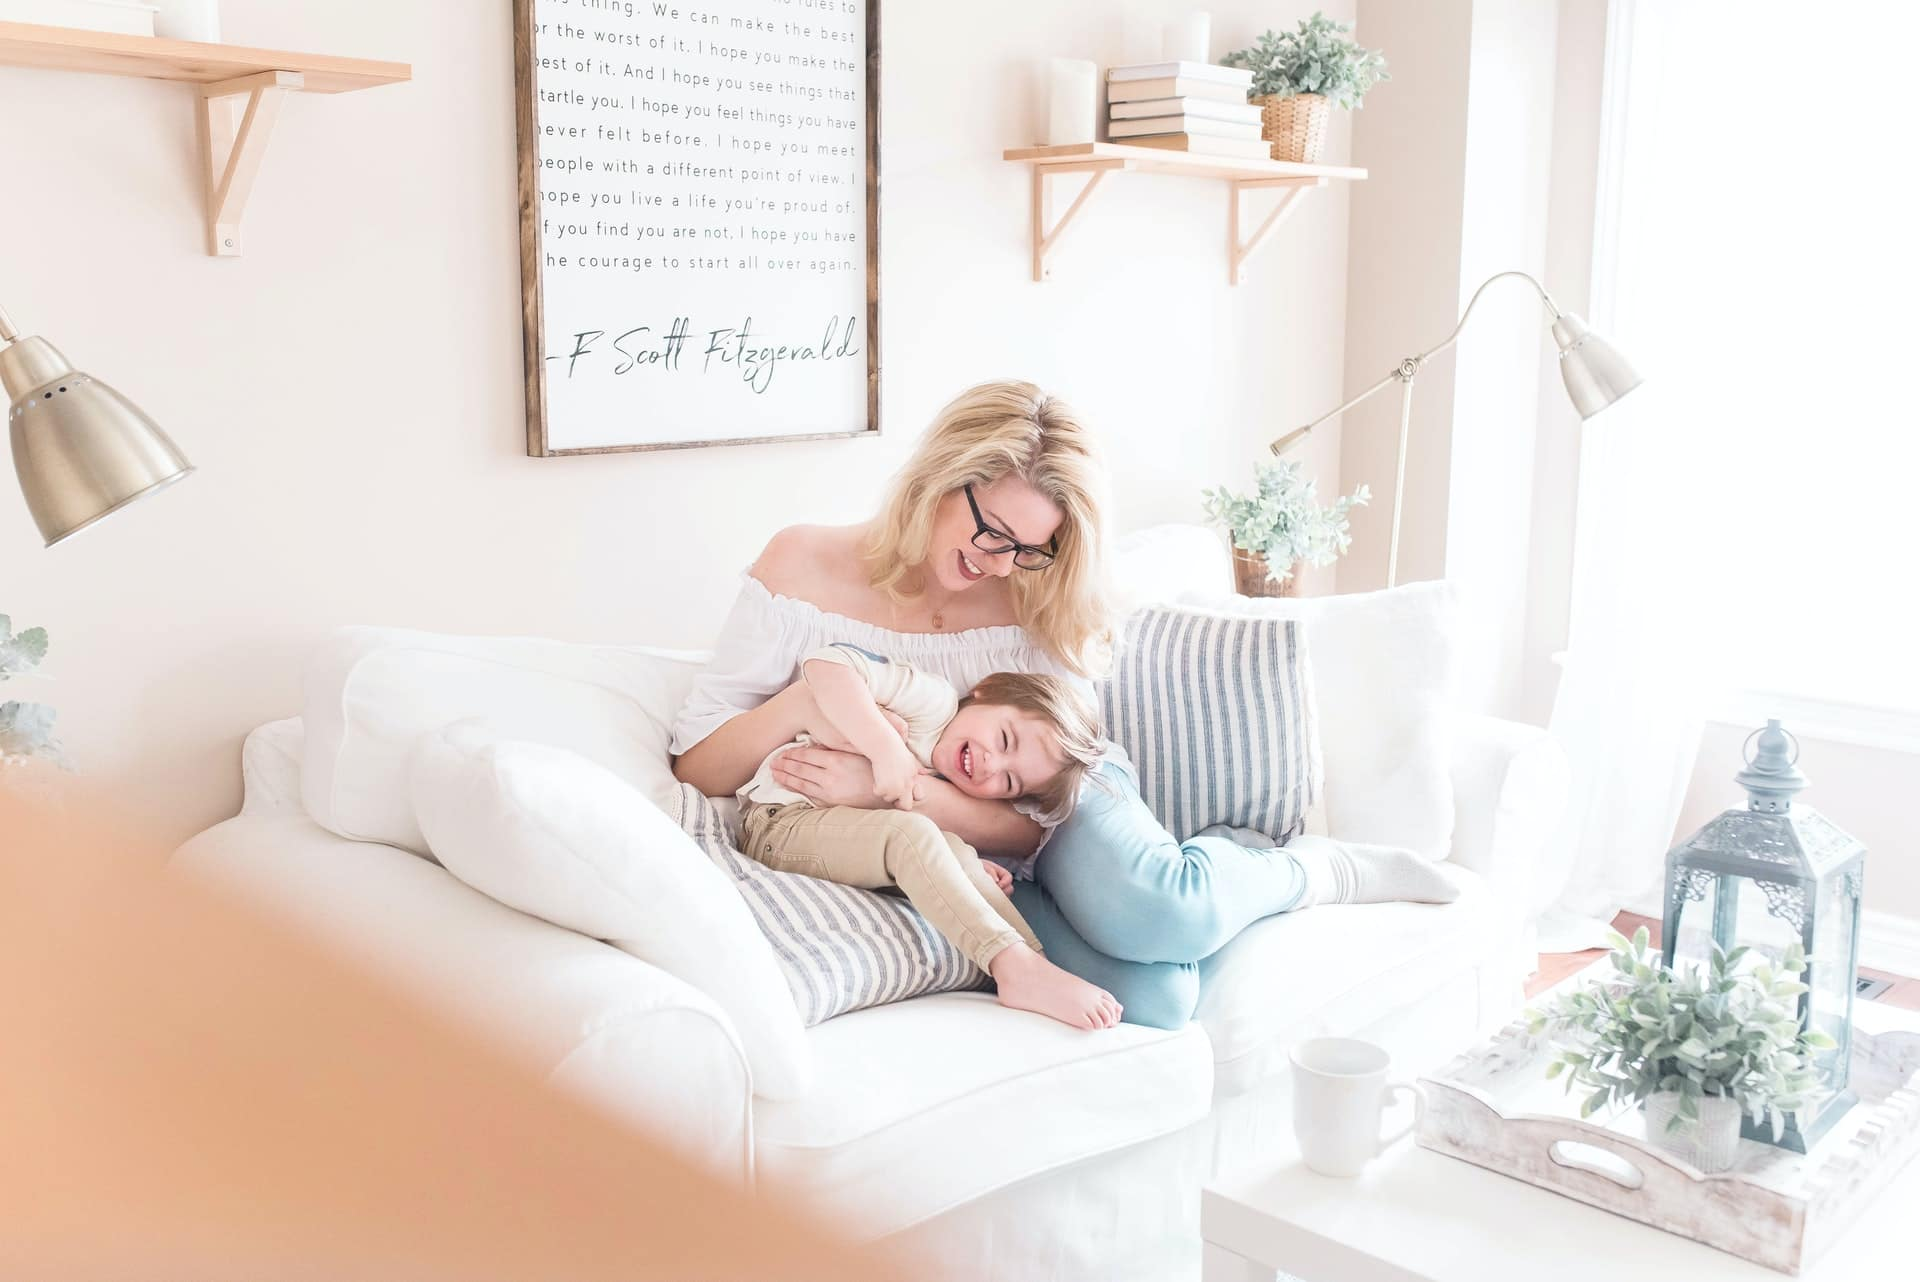 paige cody bOVZ f3fbQM unsplash - 3 Family-Friendly Design Ideas To Make Your House A Home For Every Member